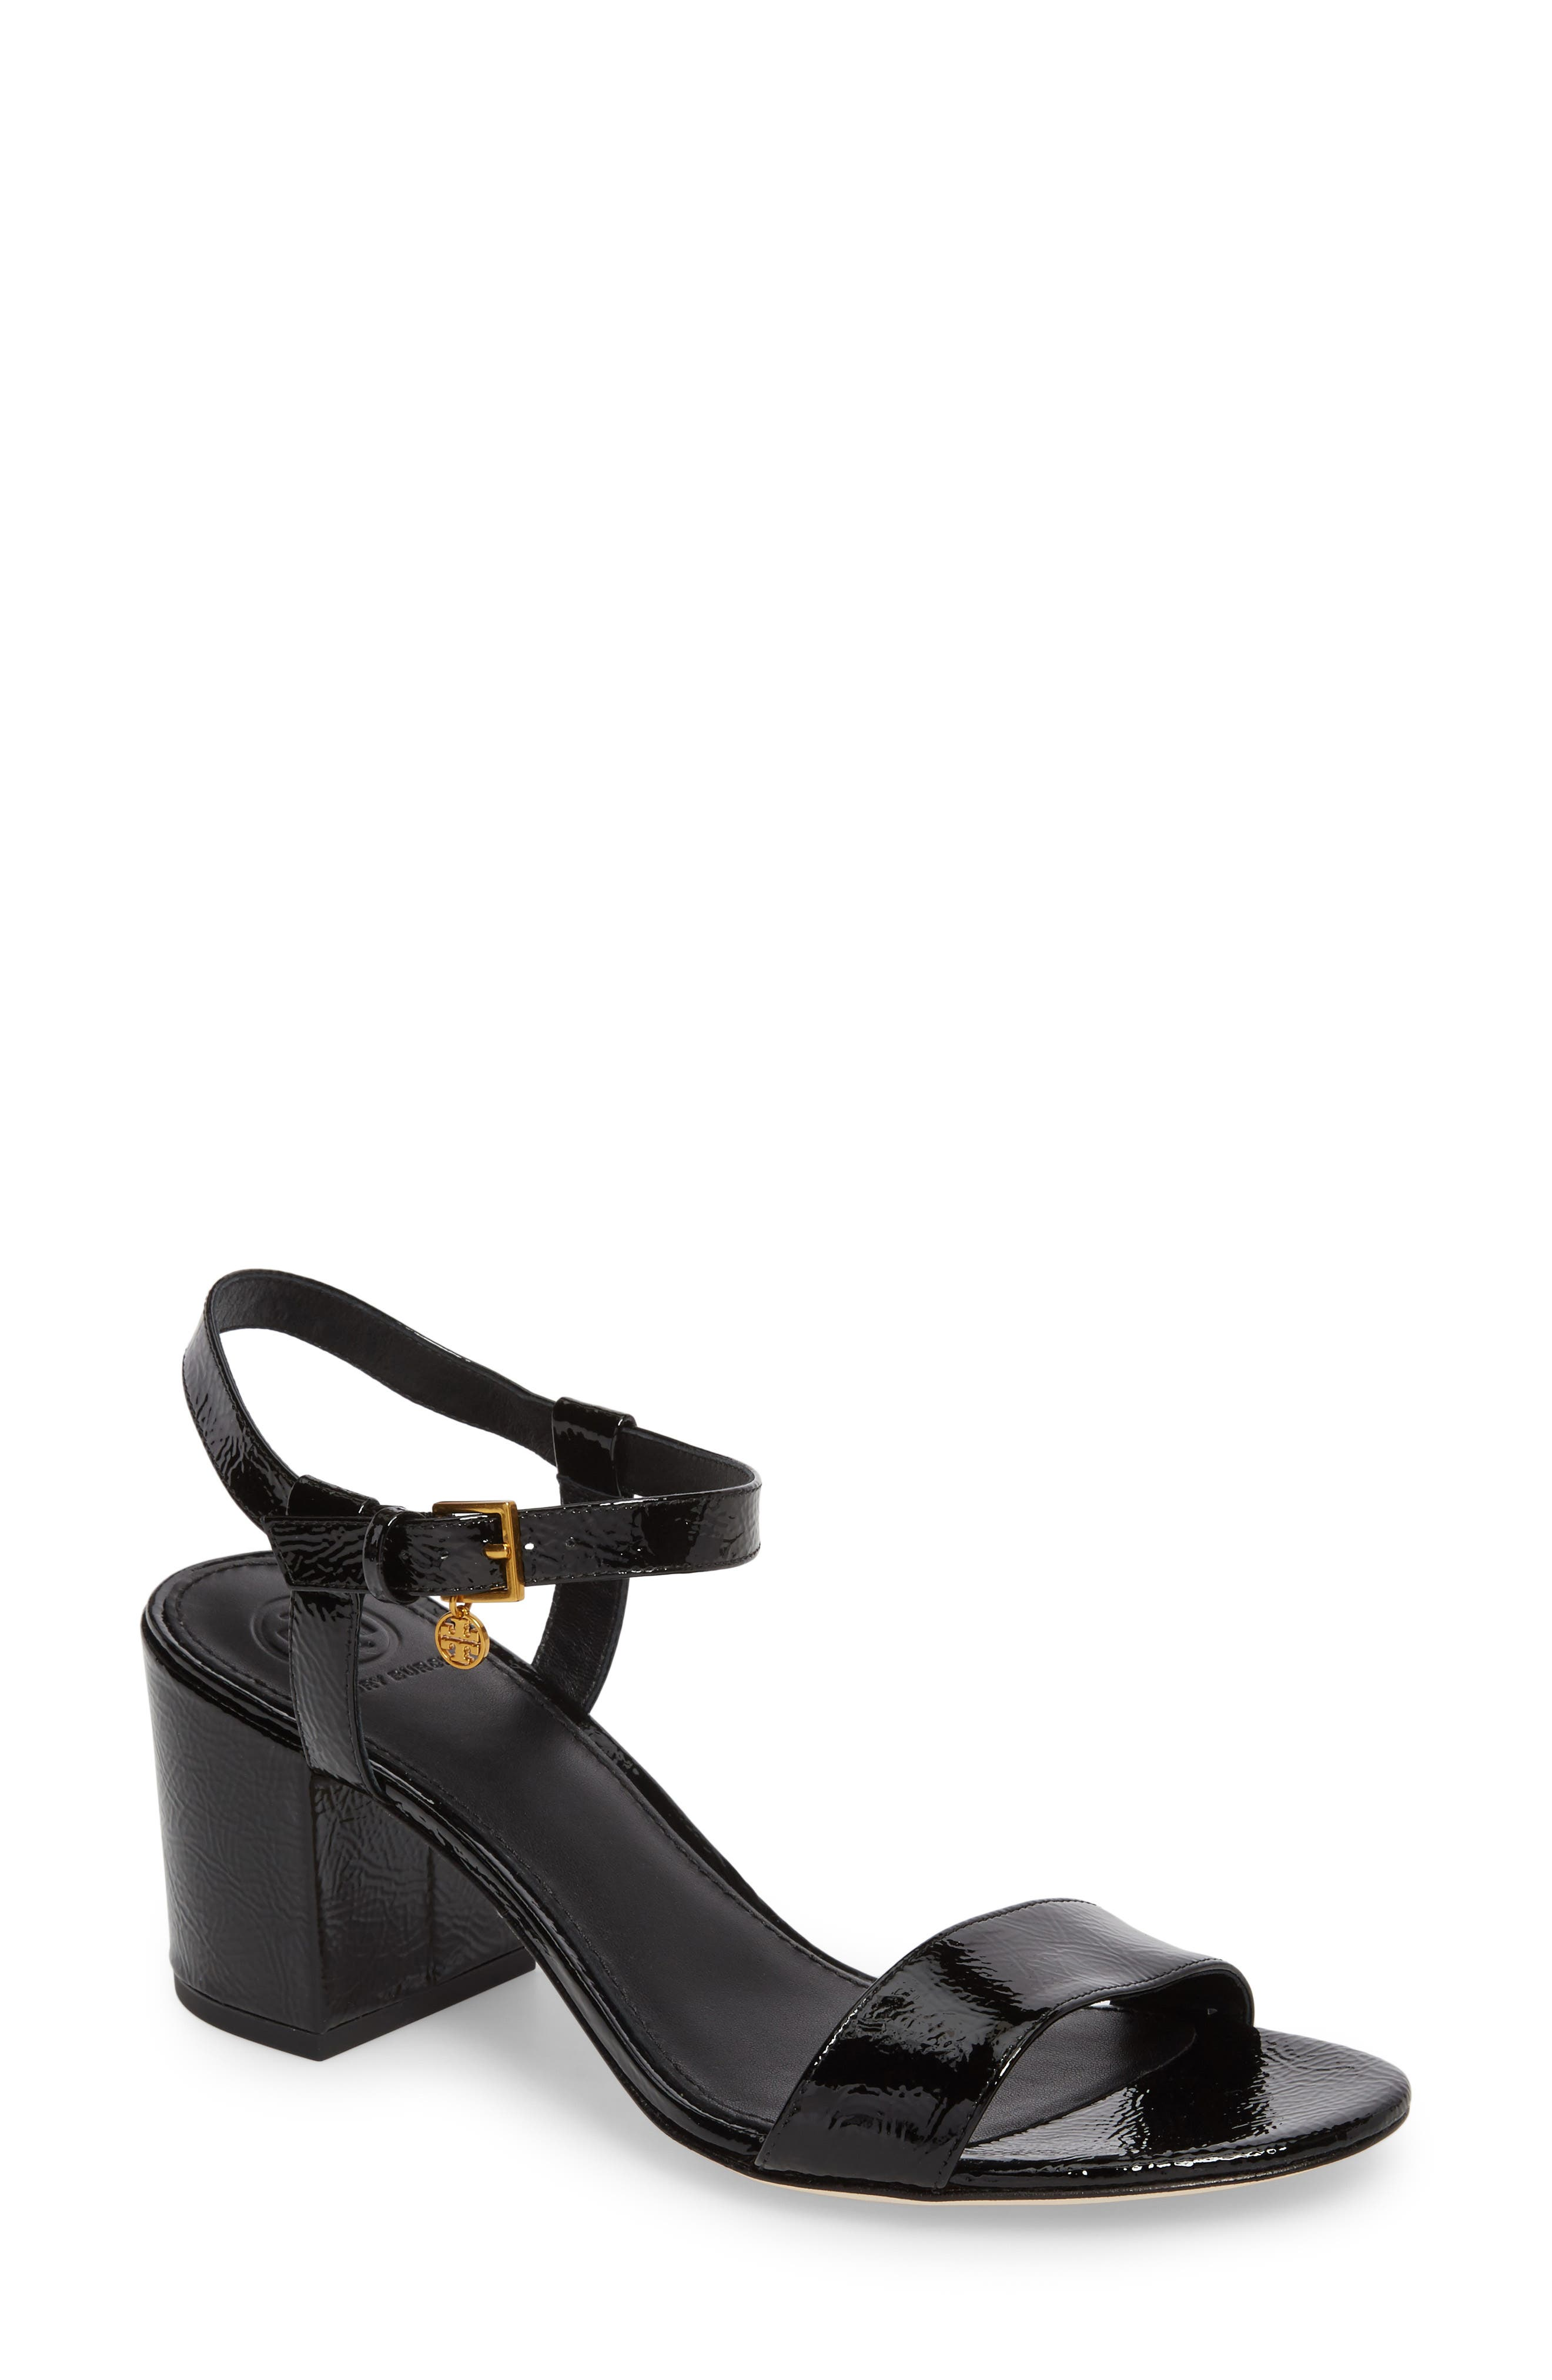 Laurel Ankle Strap Sandal,                         Main,                         color, BLACK